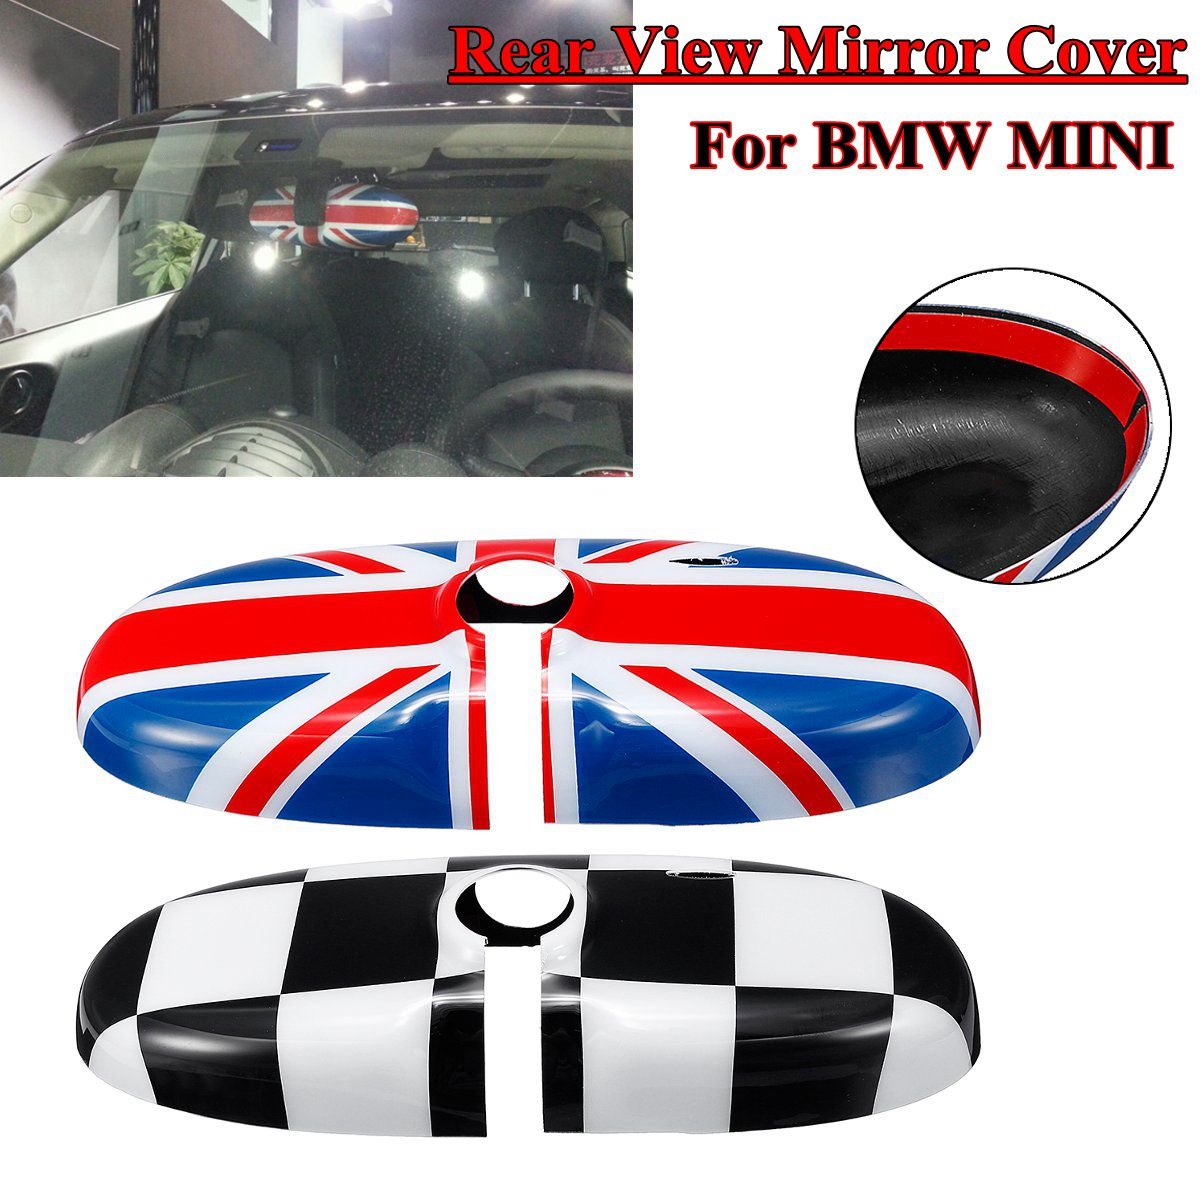 For Mini Cooper S R55 R56 R60 Countryman Styling 2008-2016 Car Rear Abs Red Union Jack Rearview Mirror Cover Decoration Accessor universal union jack 38cm pu leather car steering wheel cover decoration for mini cooper jcw s clubman countryman car styling